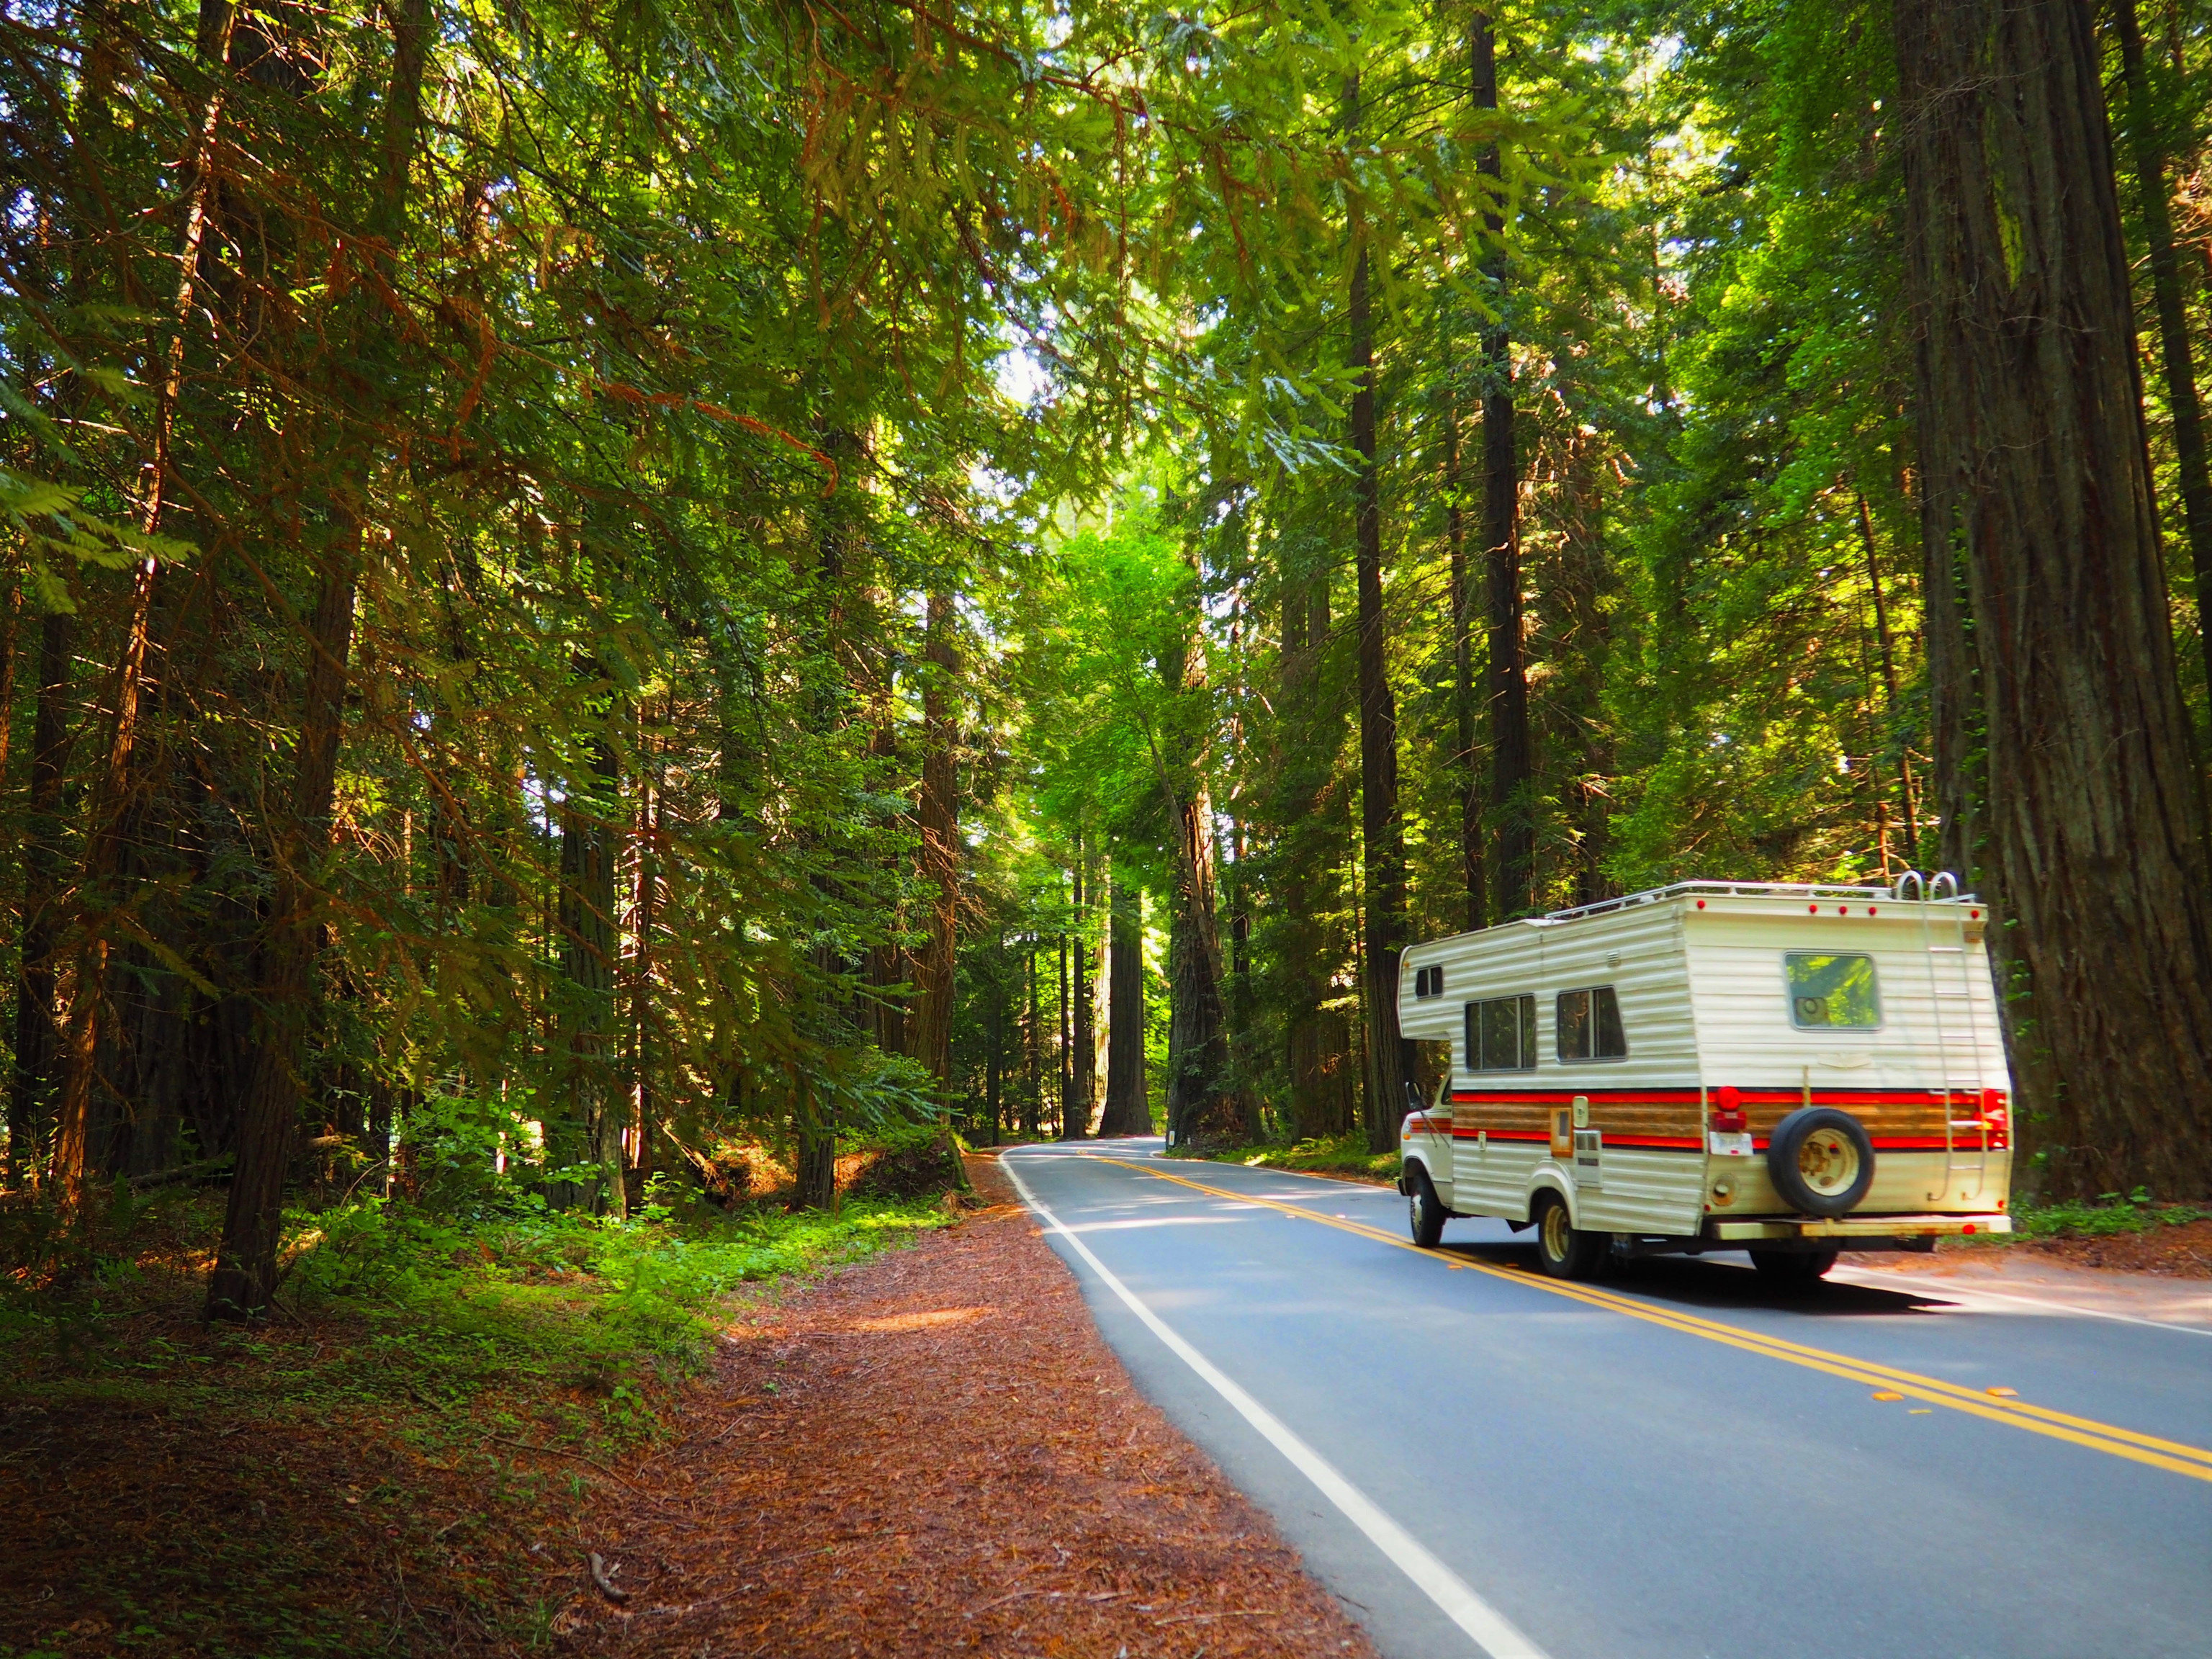 Family Travel National Parks Trip Ideas tree outdoor road habitat bus natural environment driving Forest season woody plant autumn woodland vehicle traveling wooded